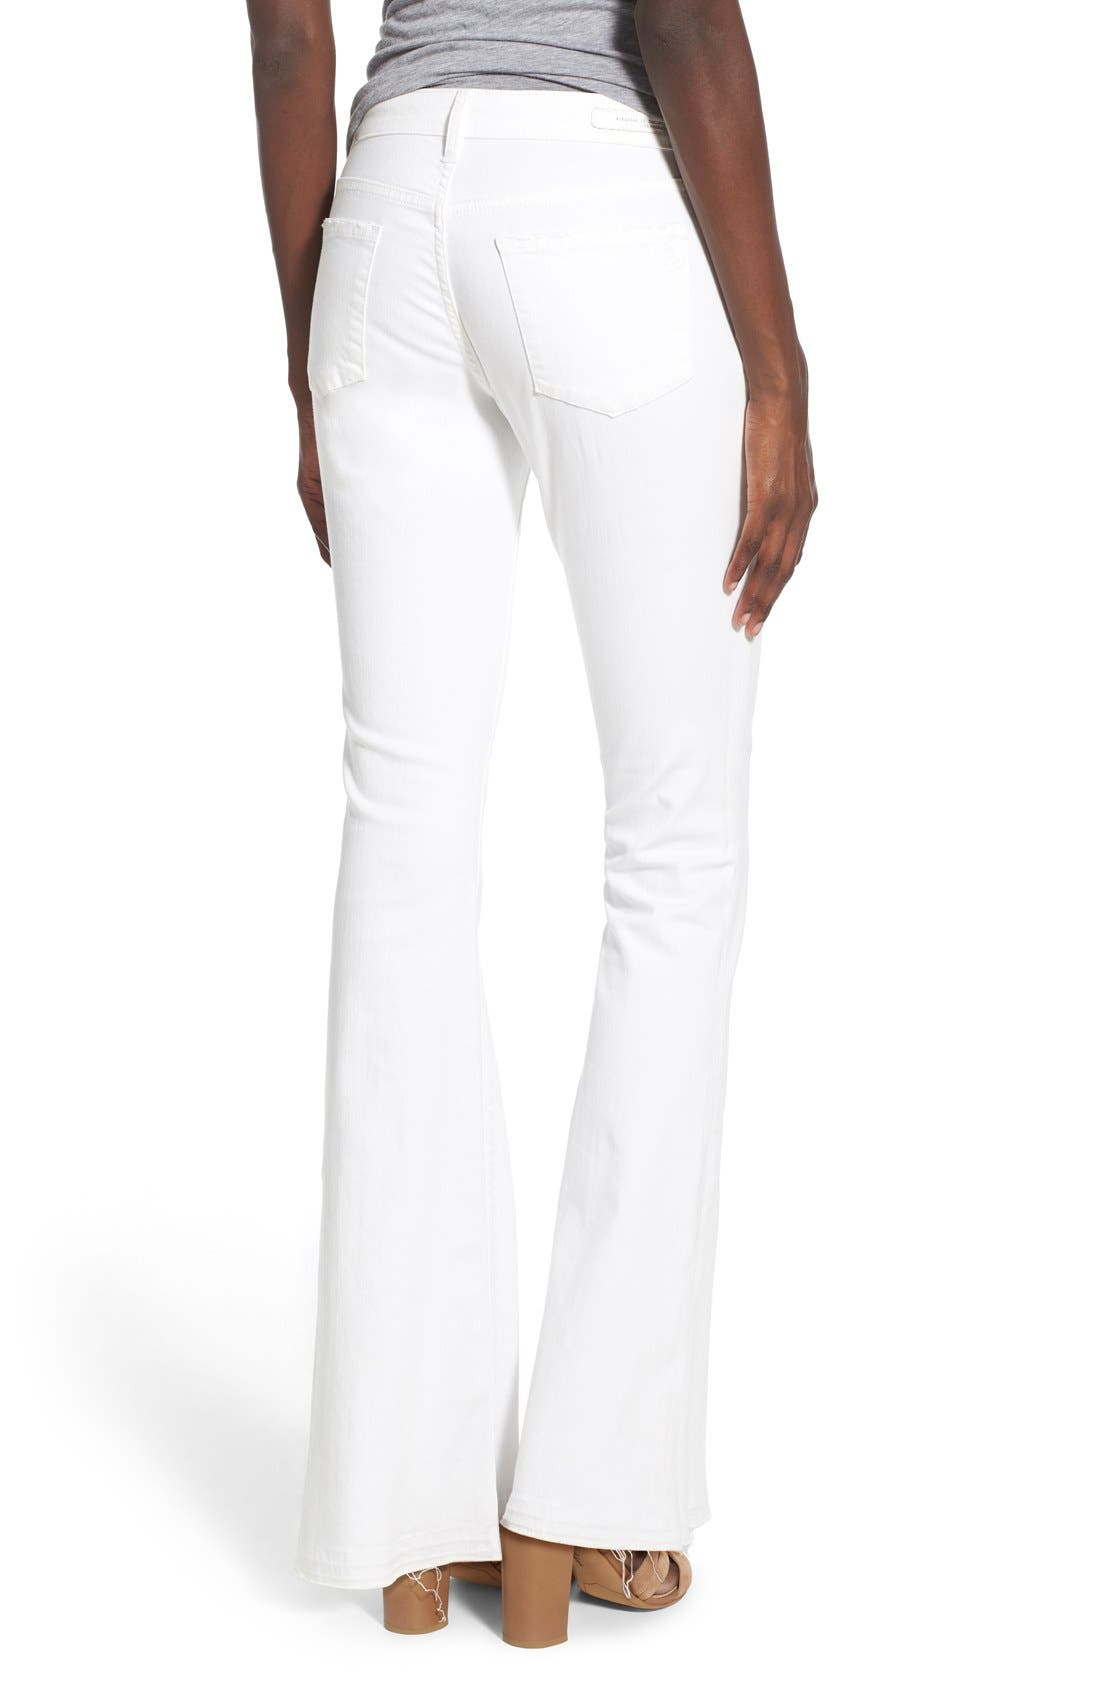 ARTICLES OF SOCIETY,                             'Faith' Flare Jeans,                             Alternate thumbnail 5, color,                             120